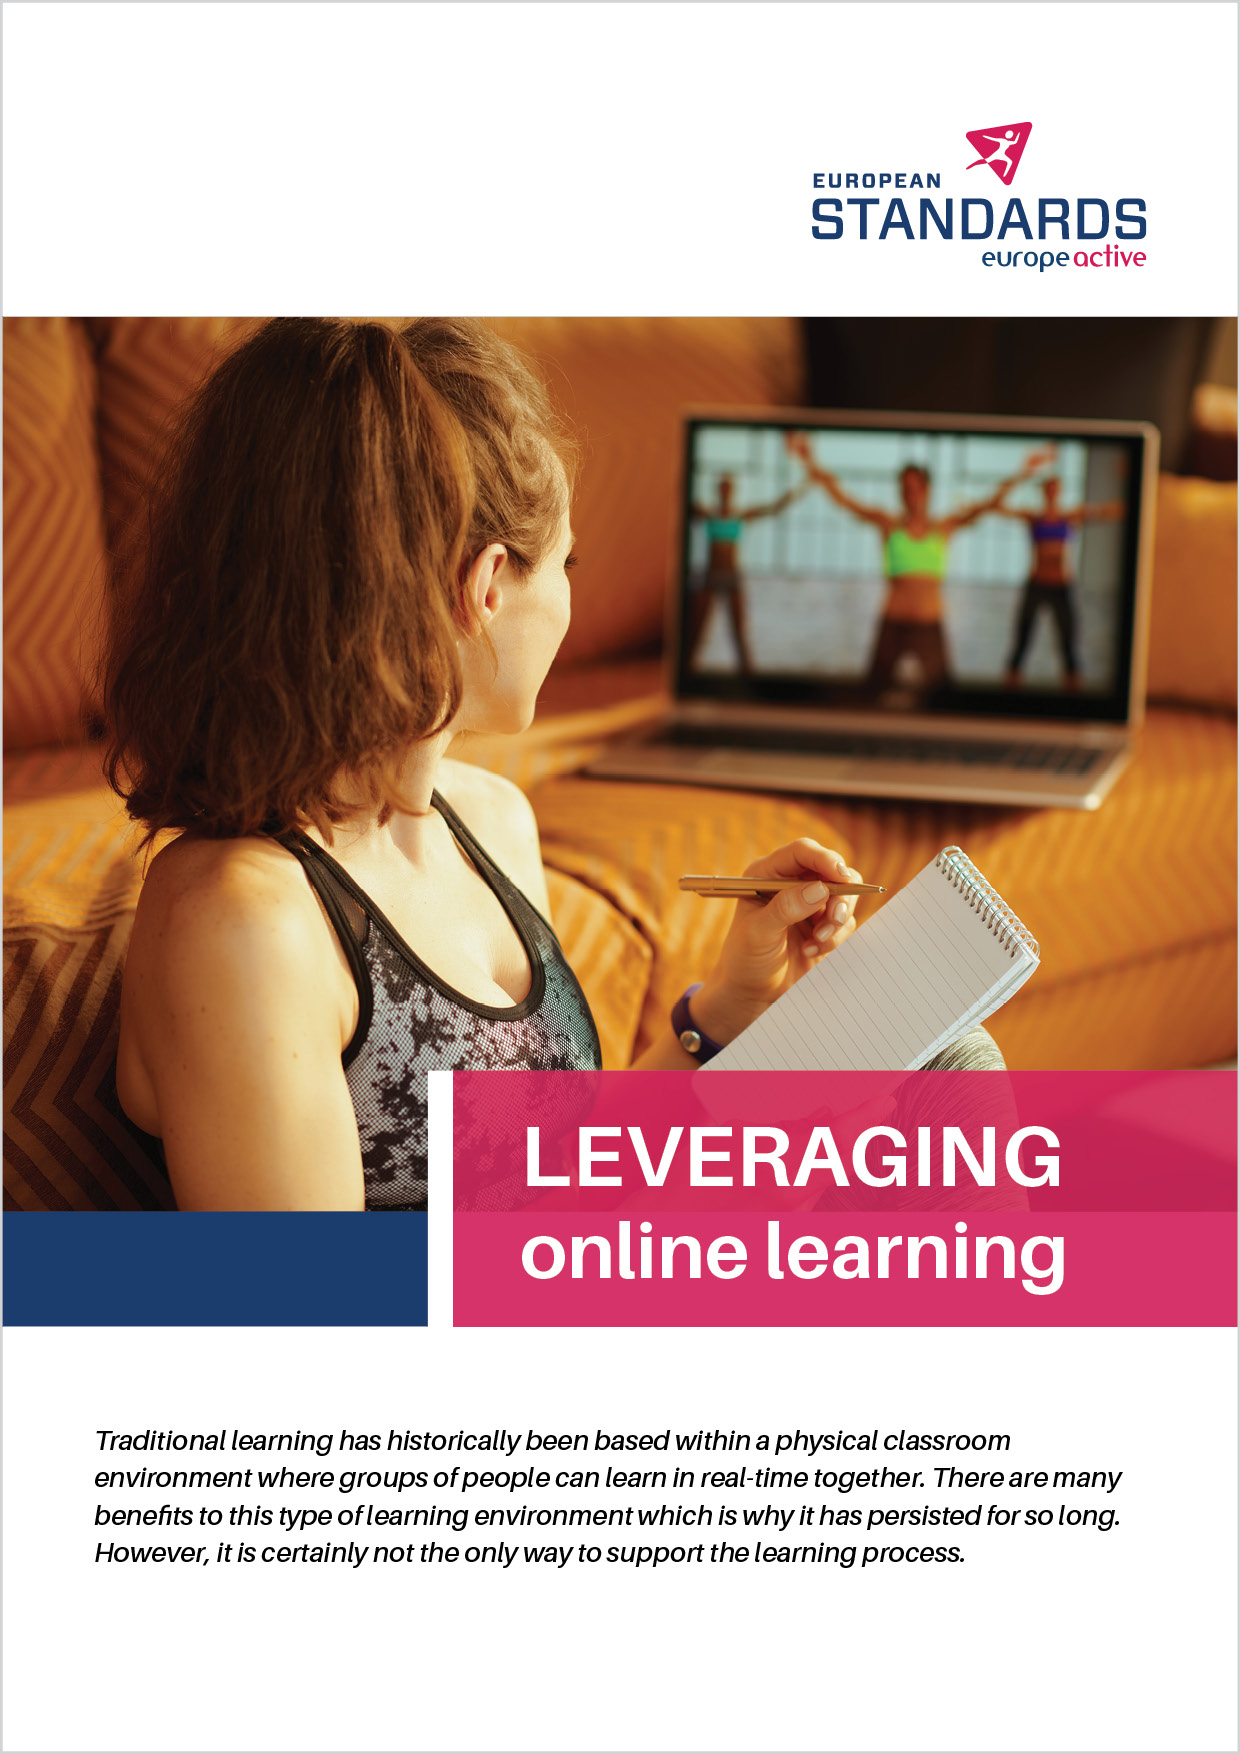 EREPS - Leveraging online learning